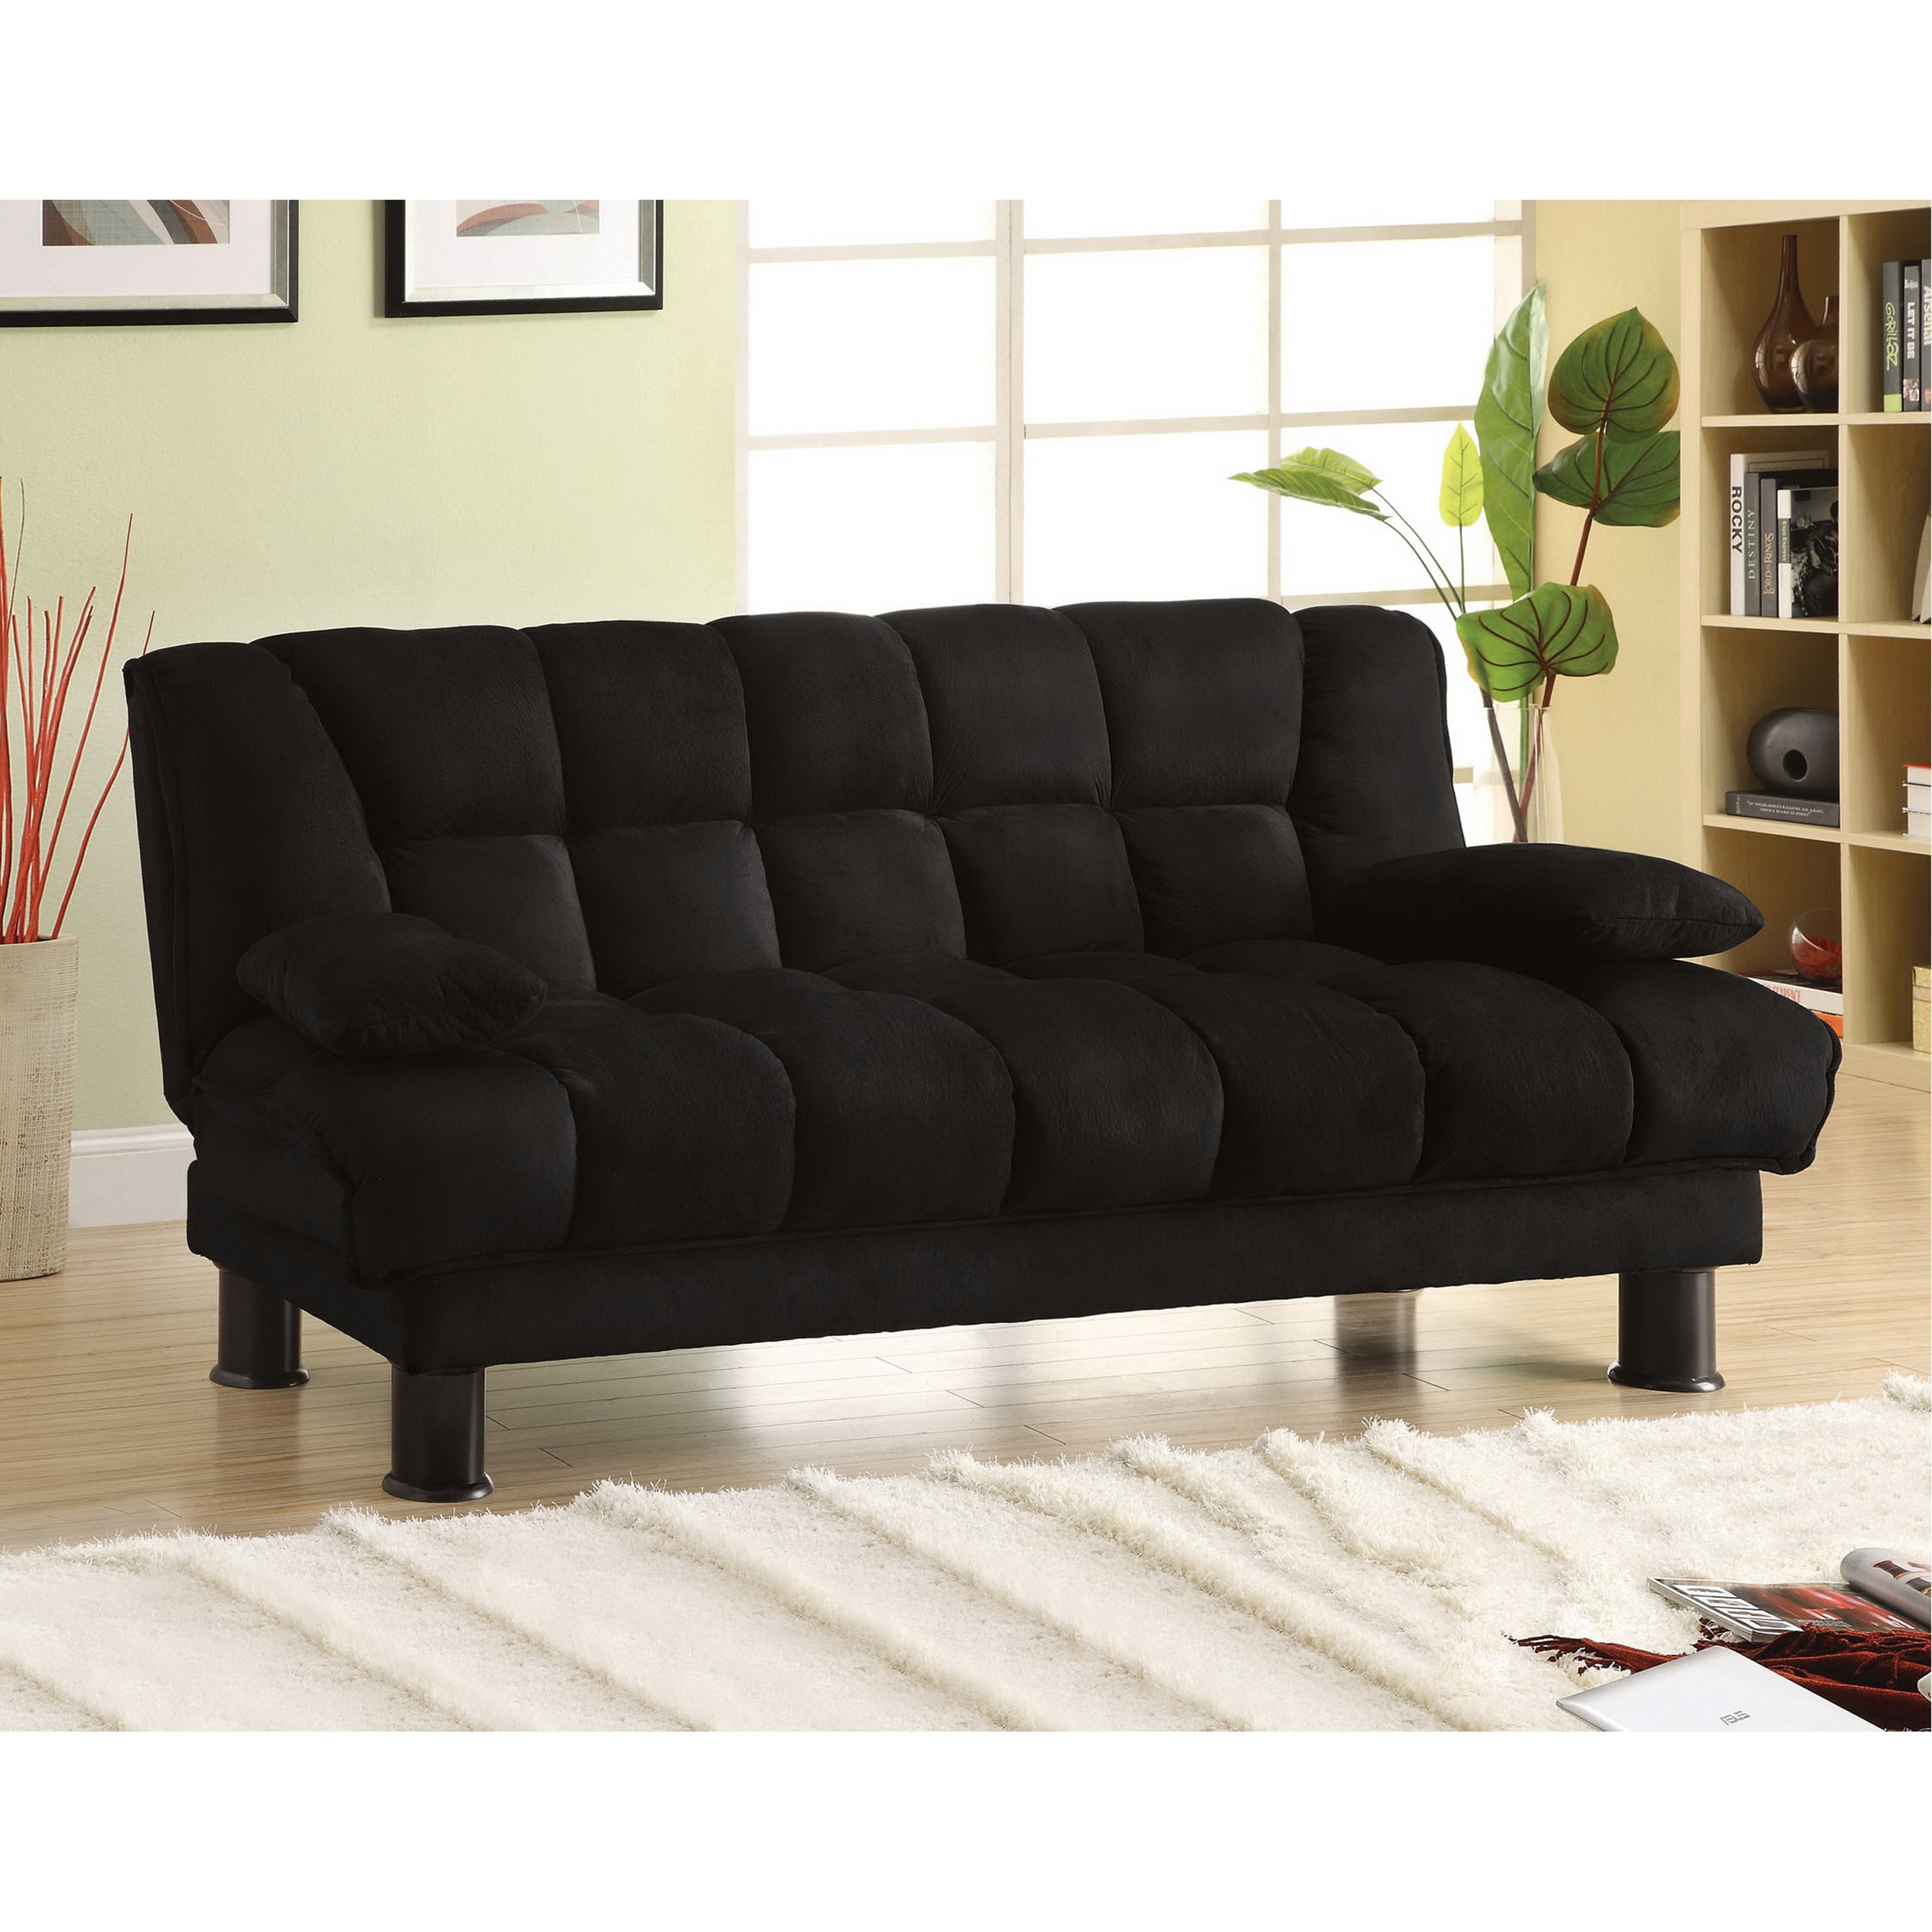 Furniture Of America Black Elephant Skin Microfiber Futon Sofabed With Storage Free Shipping Today Com 6626839